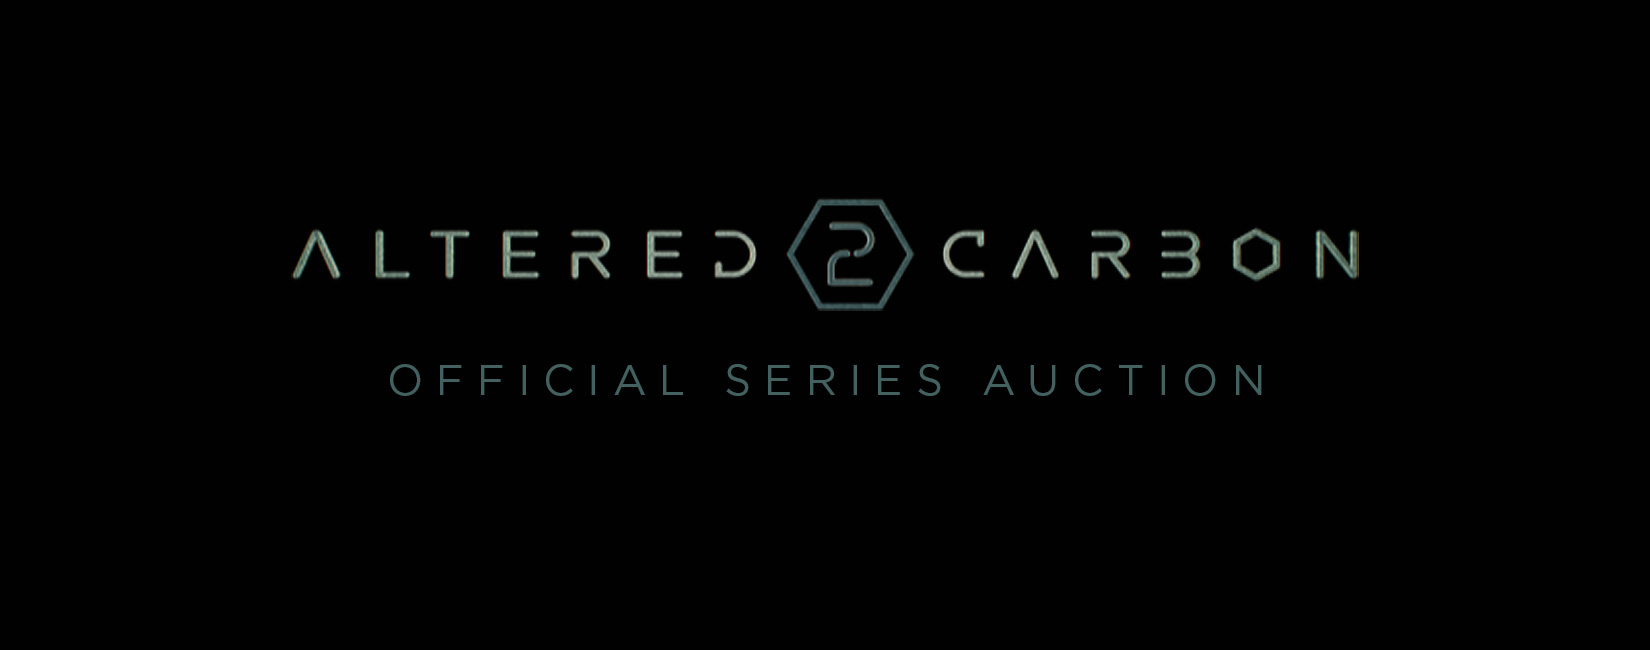 Altered Carbon Auction